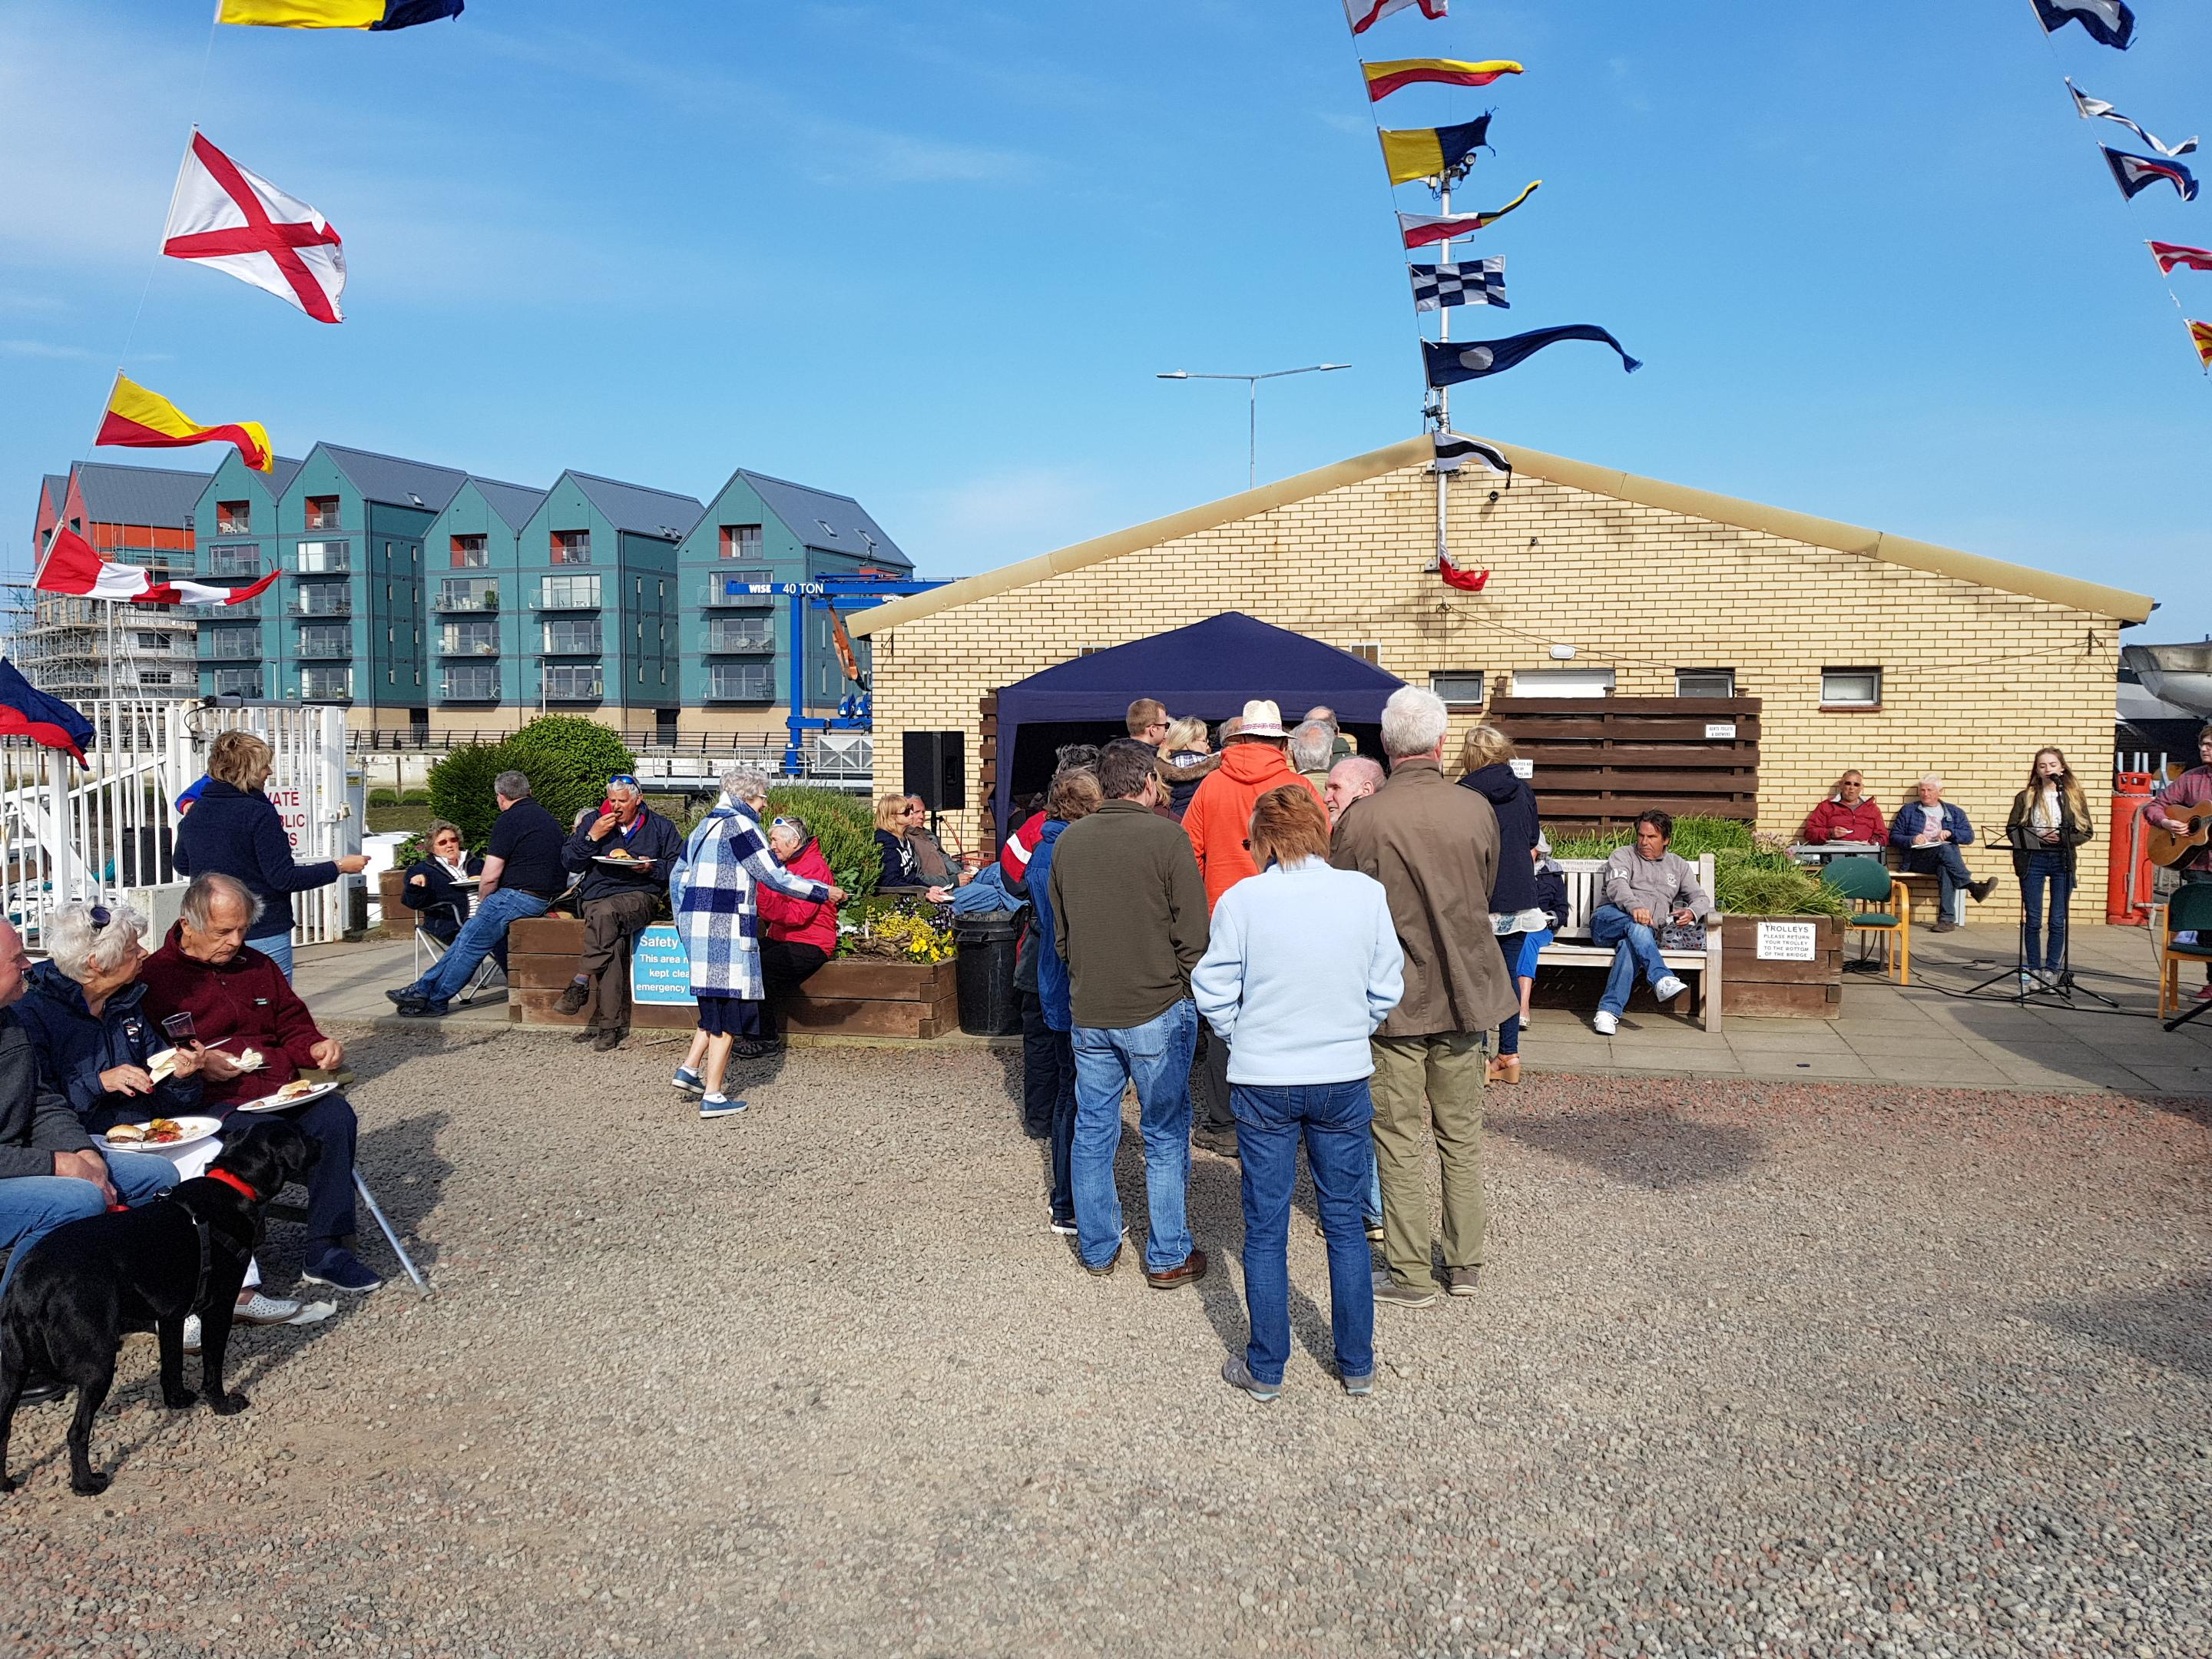 summer event at Amble Marina